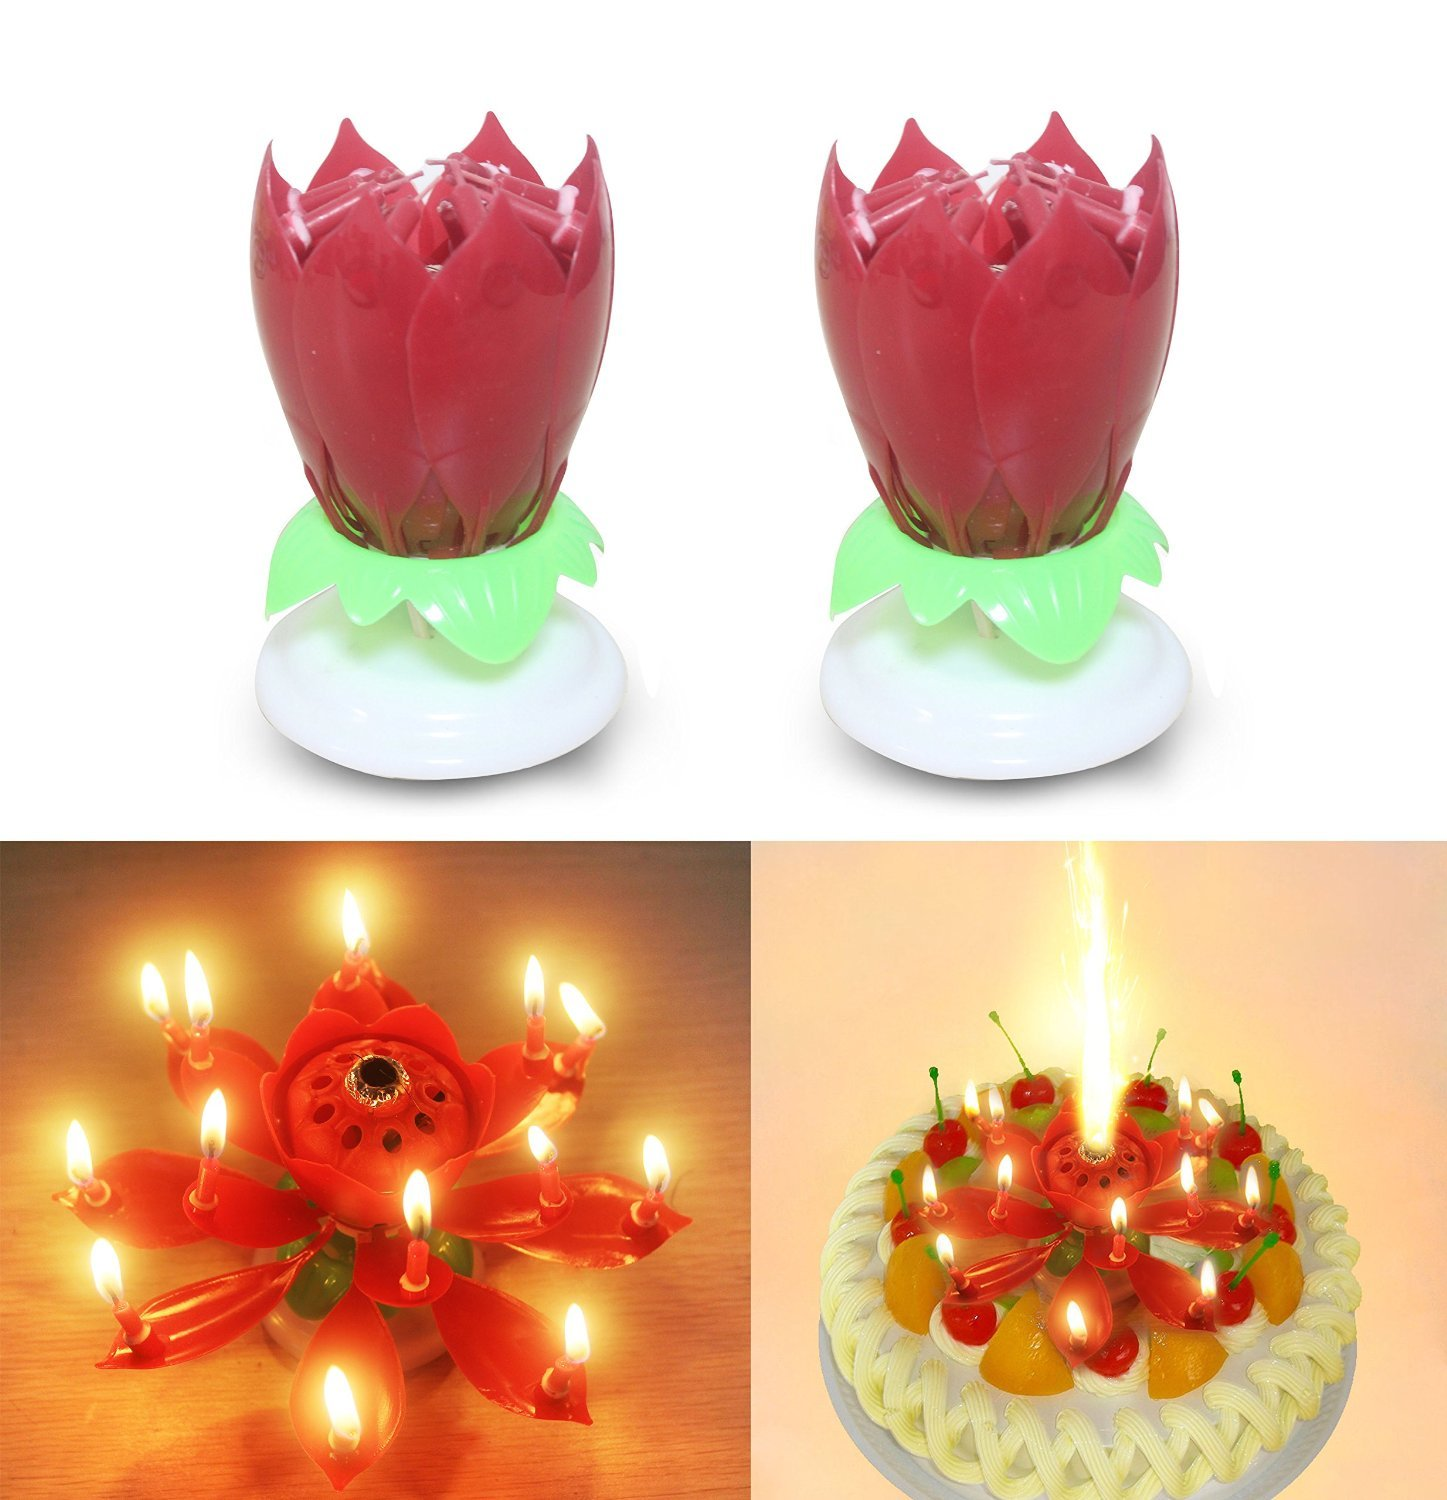 Sinfore 2pcs Set Of The Amazing Two Layers With 14 Small Candles